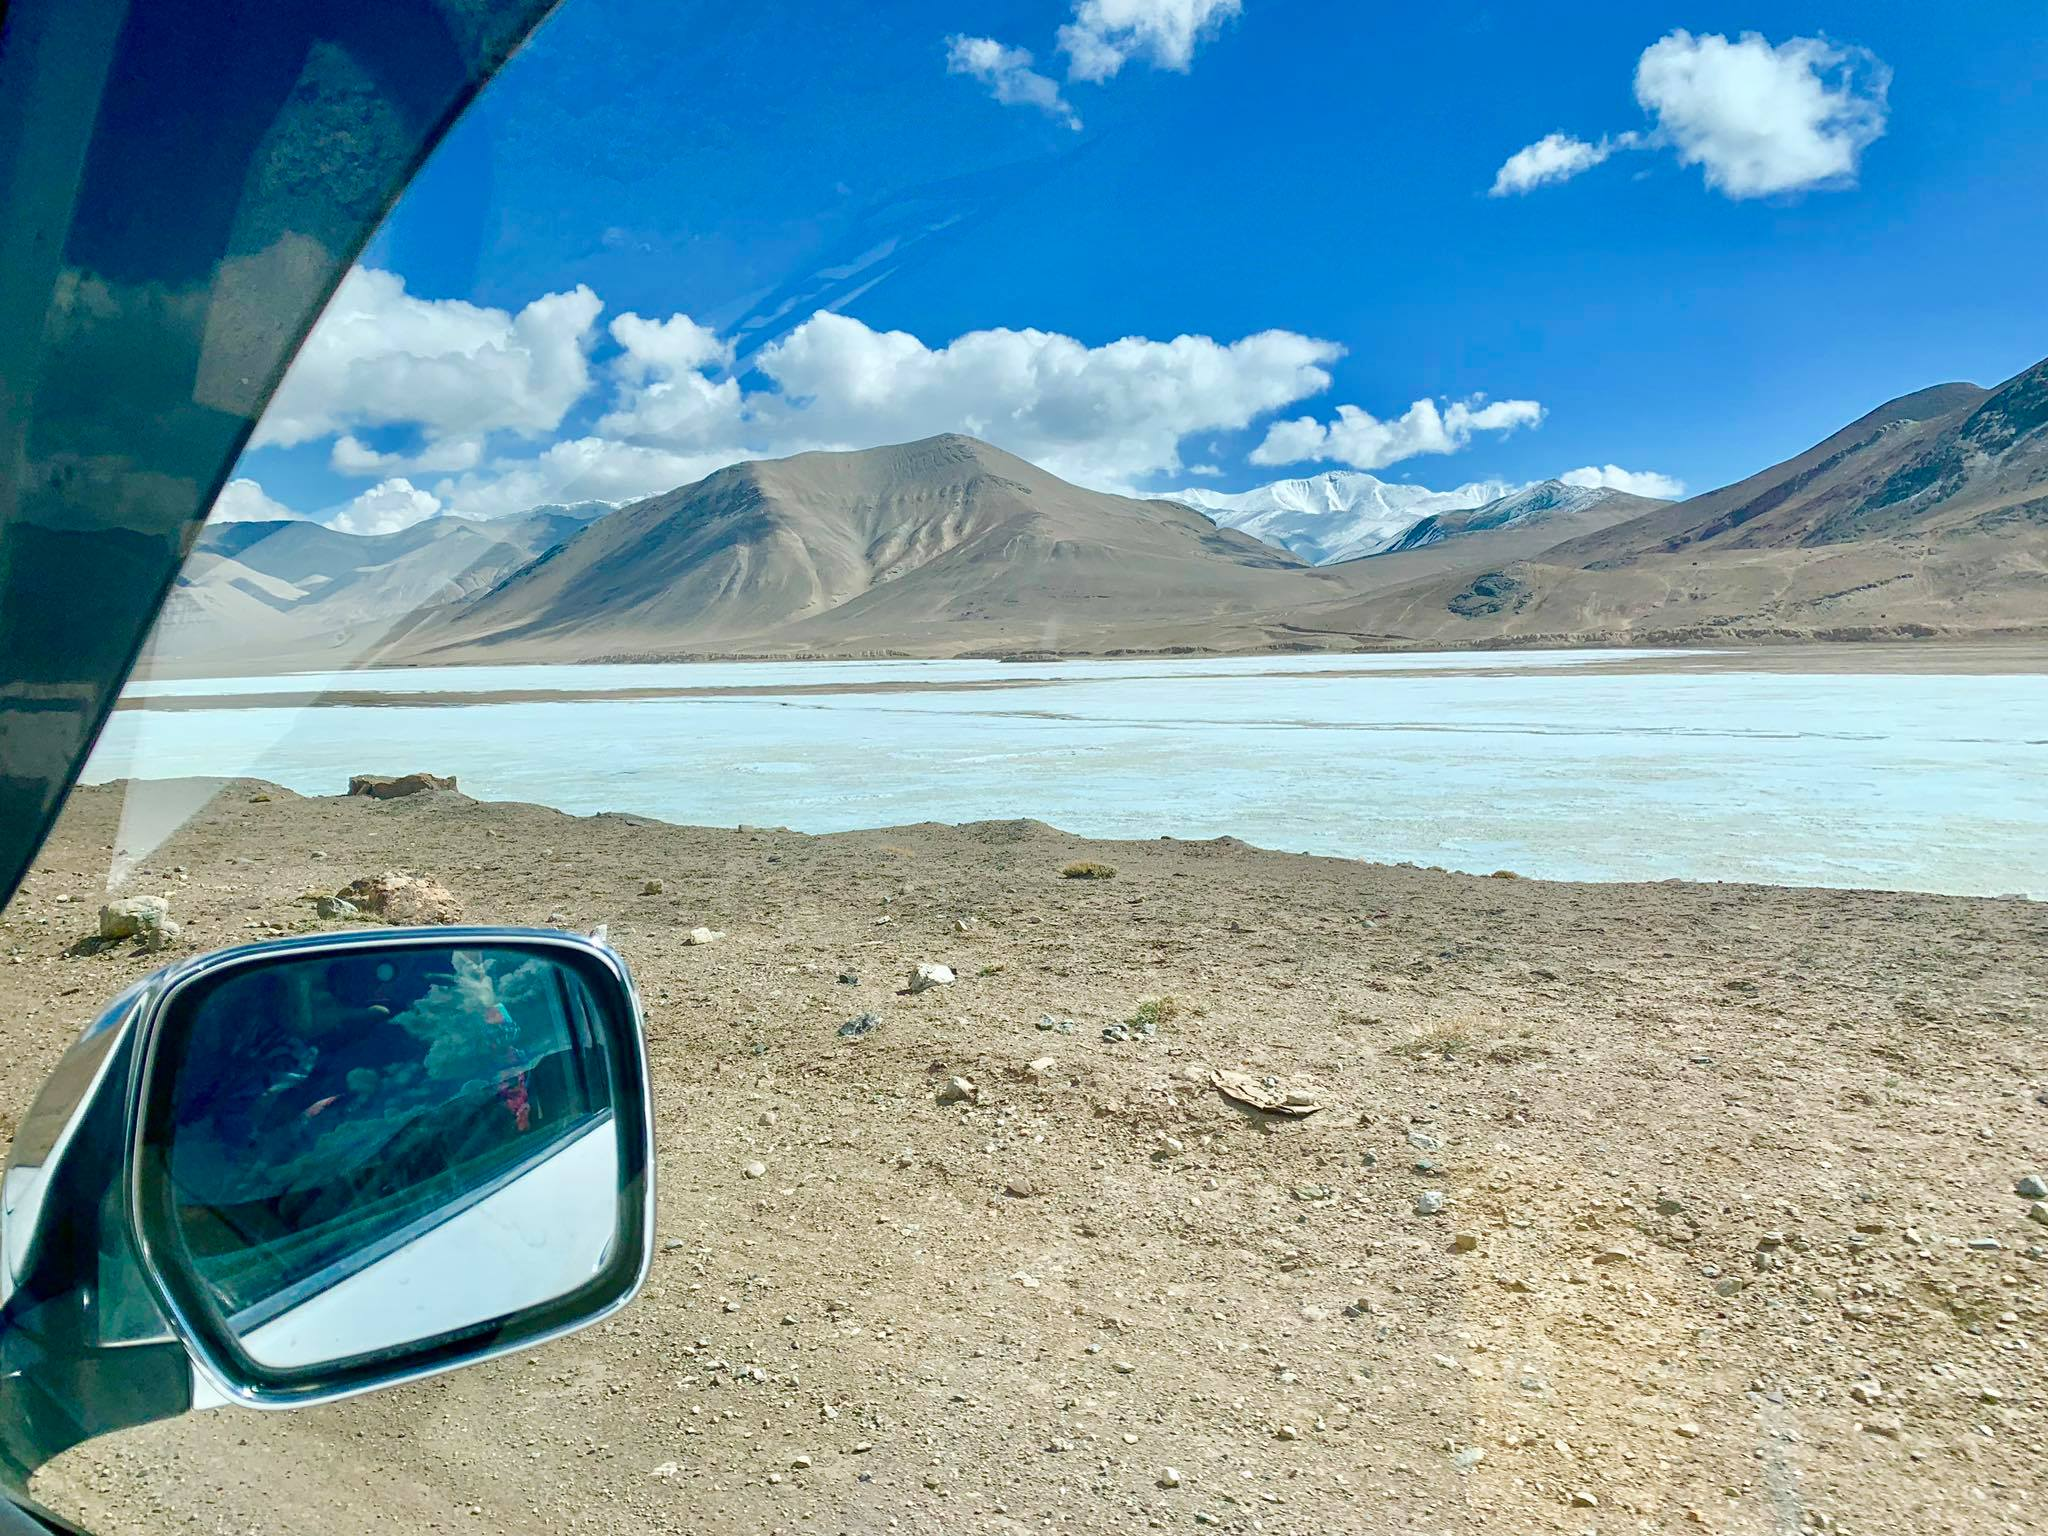 Kach Solo Travels in 2019 Hello from KYRGYZSTAN, my 128th country32.jpg